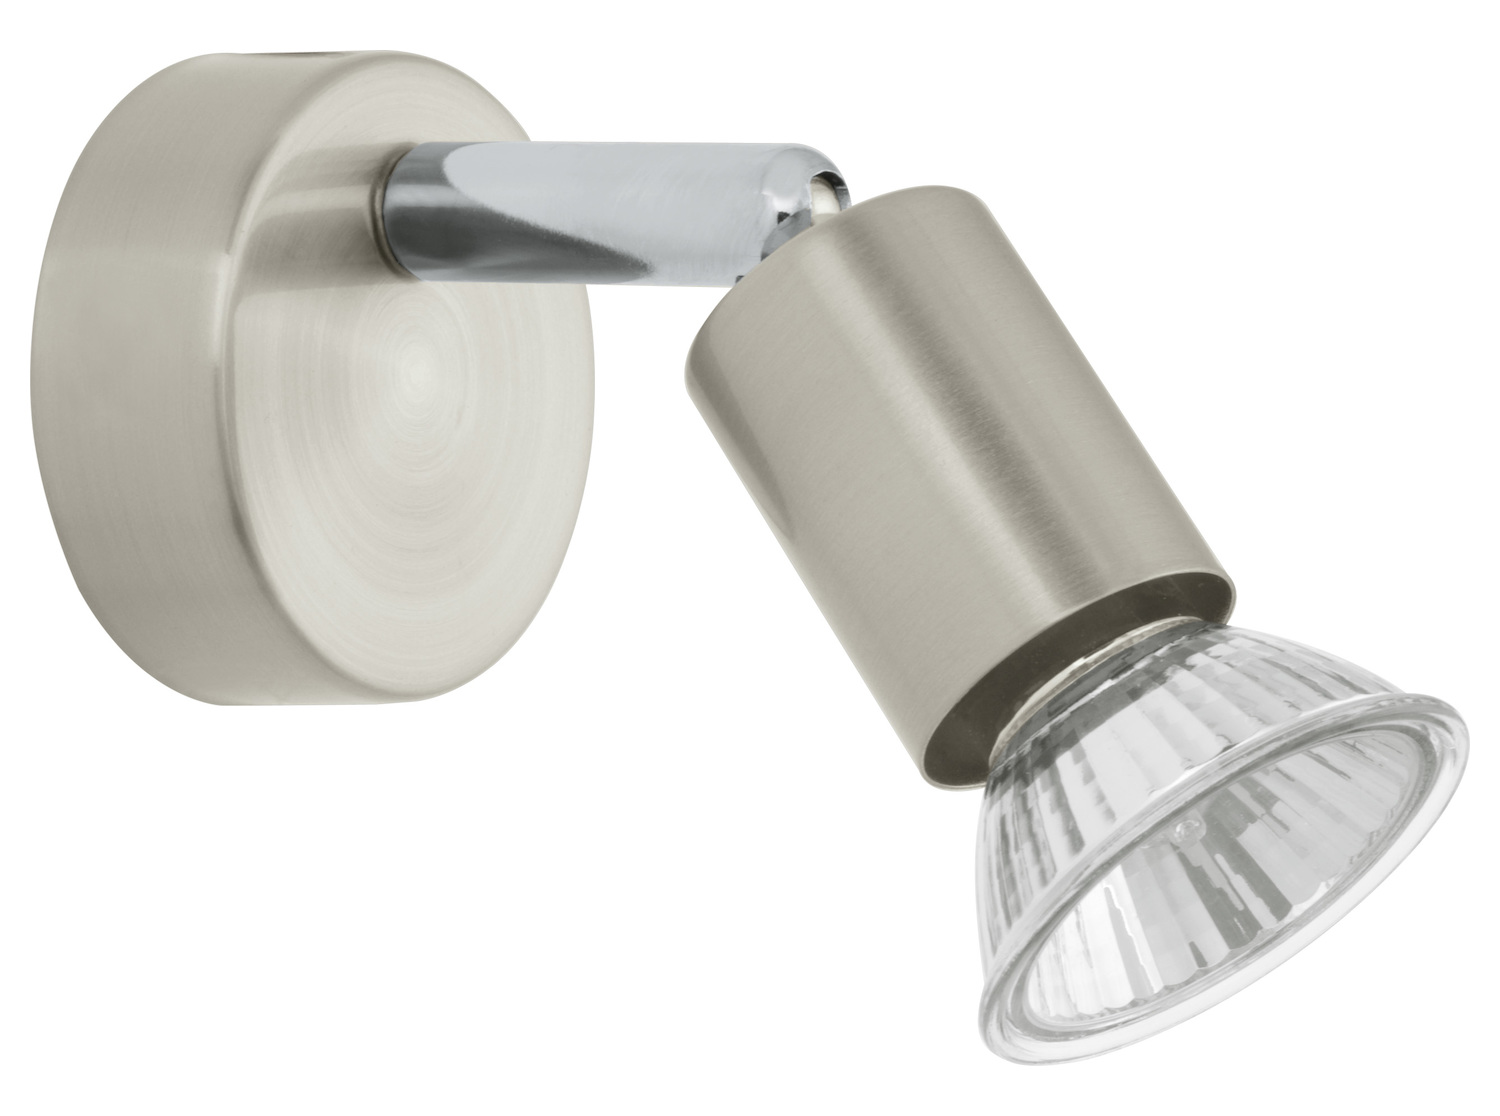 Eglo Nickel and Chrome Buzz Single-Light Wall Sconce